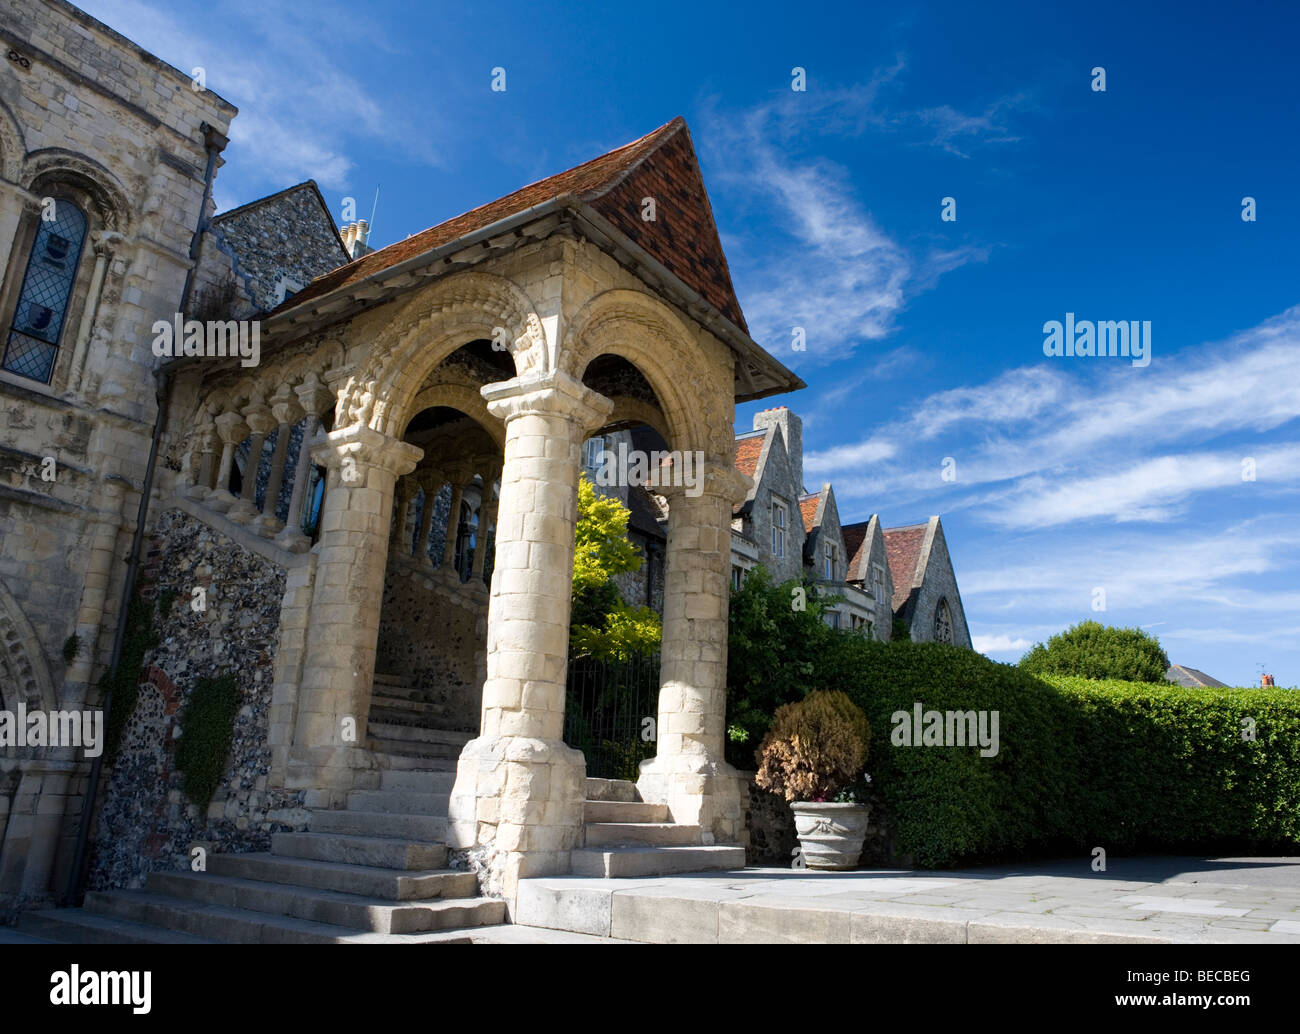 The Norman Staircase at the King's School in Canterbury, Kent, UK. - Stock Image